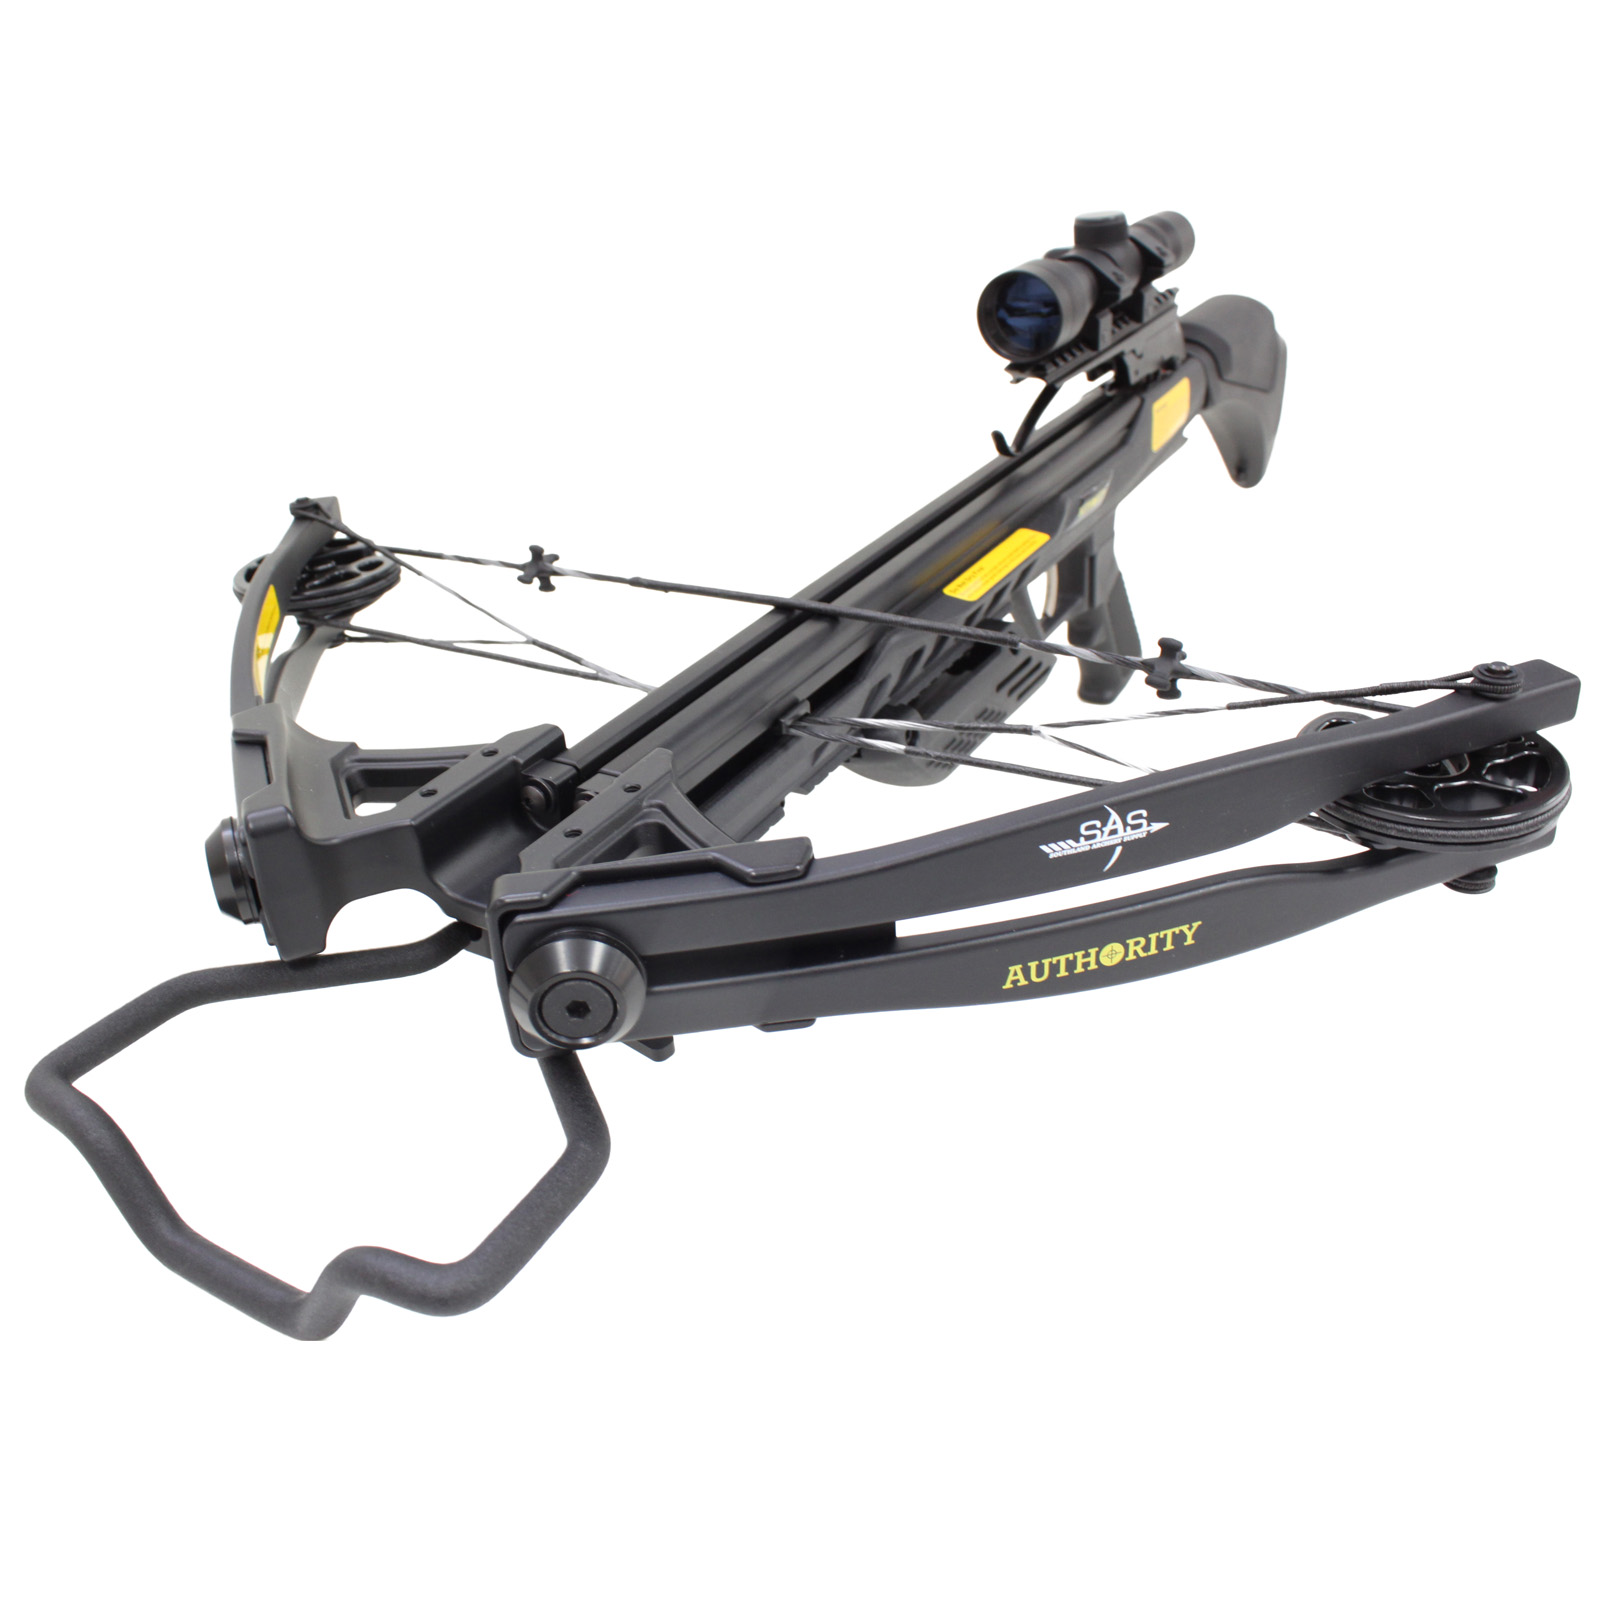 SAS Authoirity 175lbs Compound Crossbow Package - Black